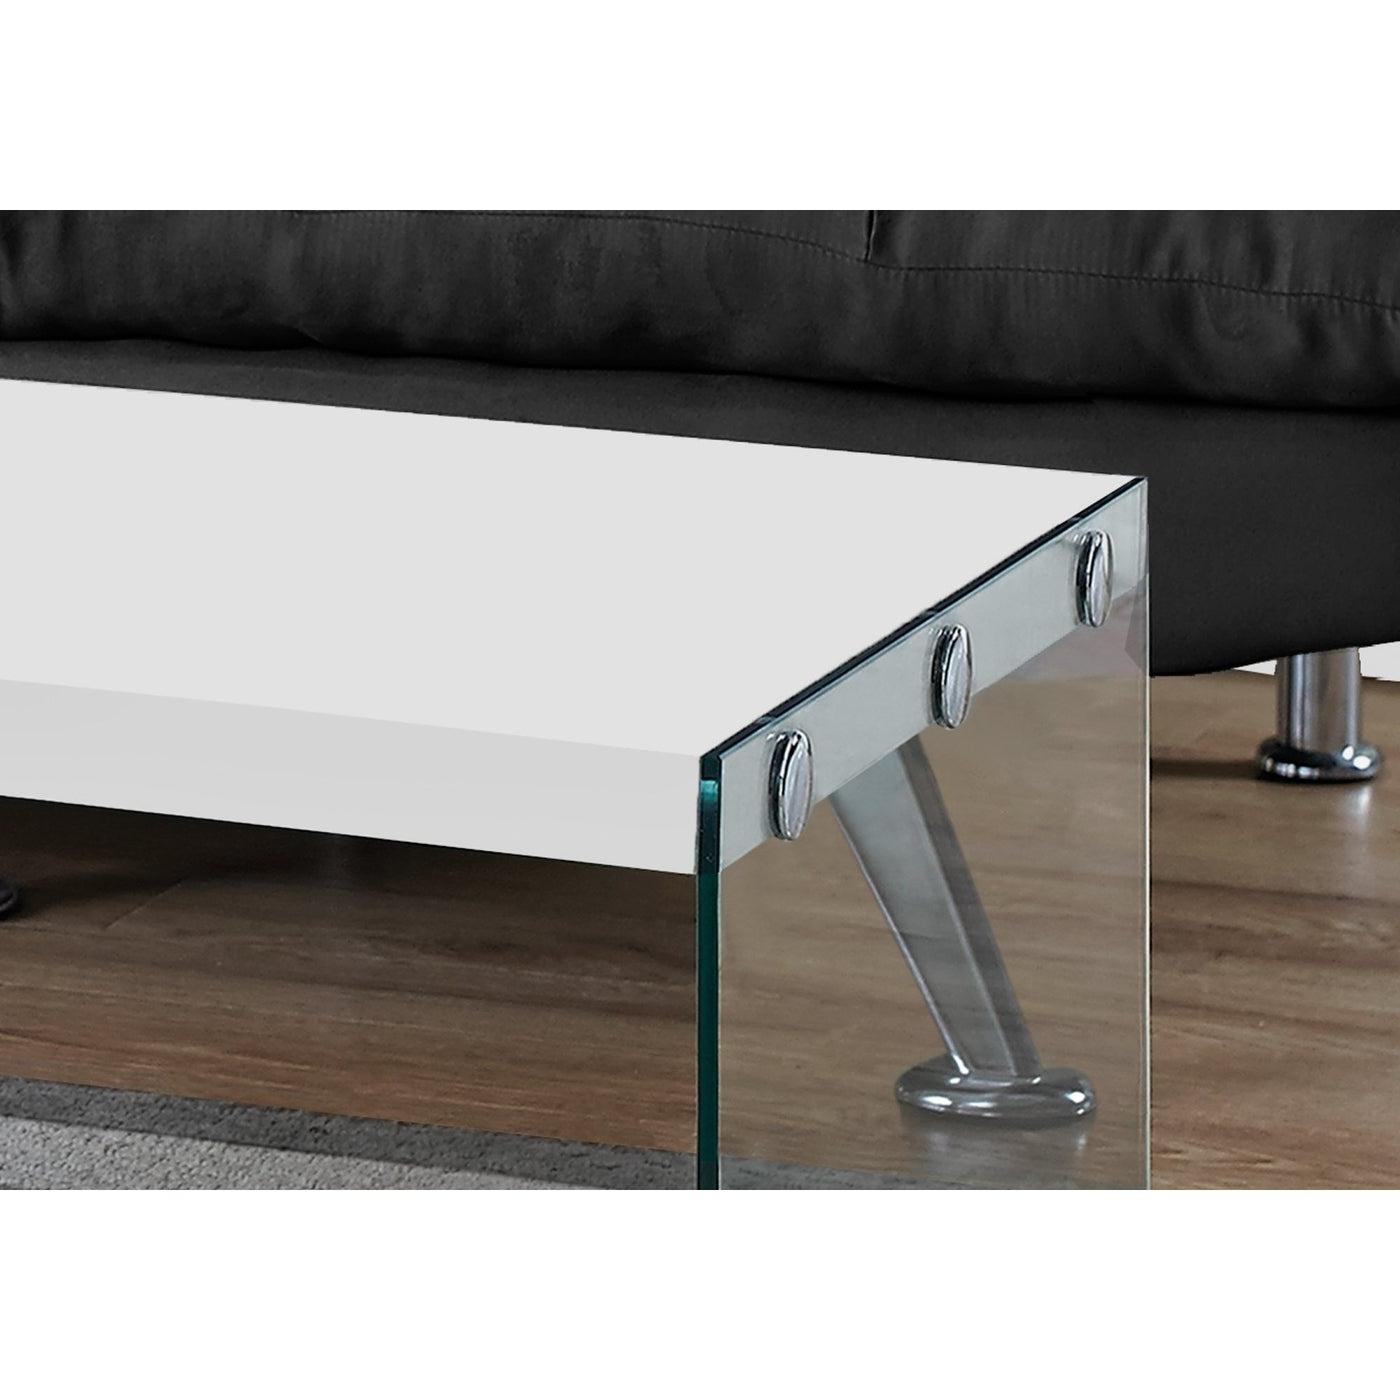 Glossy White Hollow Core Tempered Glass Cocktail Table Throughout Fashionable Glossy White Hollow Core Tempered Glass Cocktail Tables (View 2 of 20)